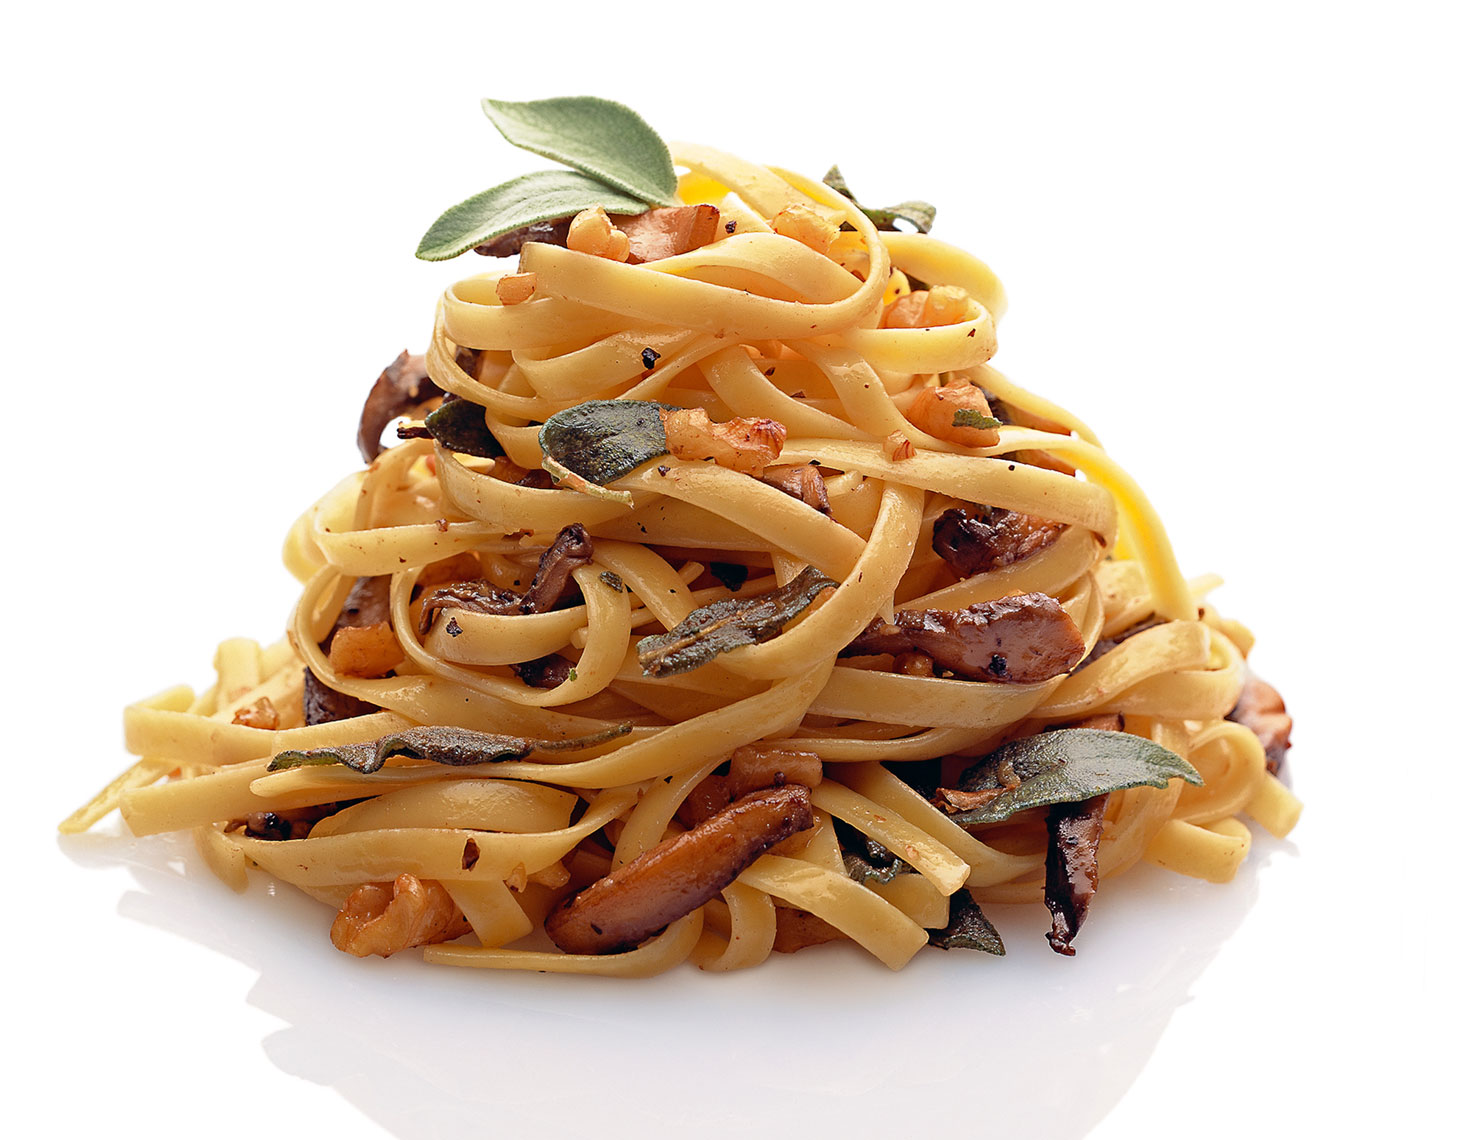 Linguini with Mushrooms on White Seamless